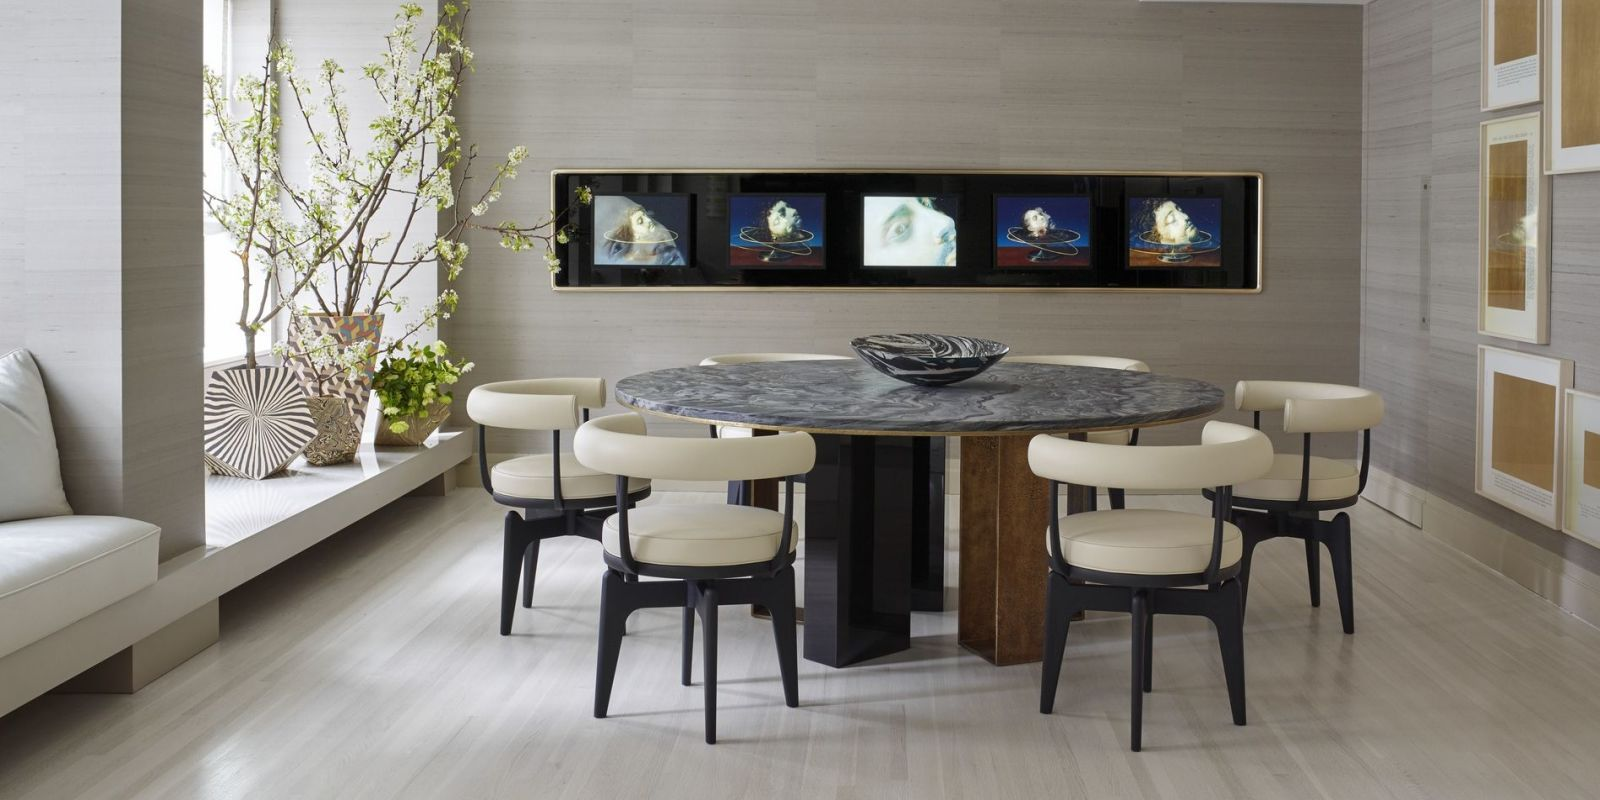 Best Centerpiece Ideas For Living Room Table Minimalist